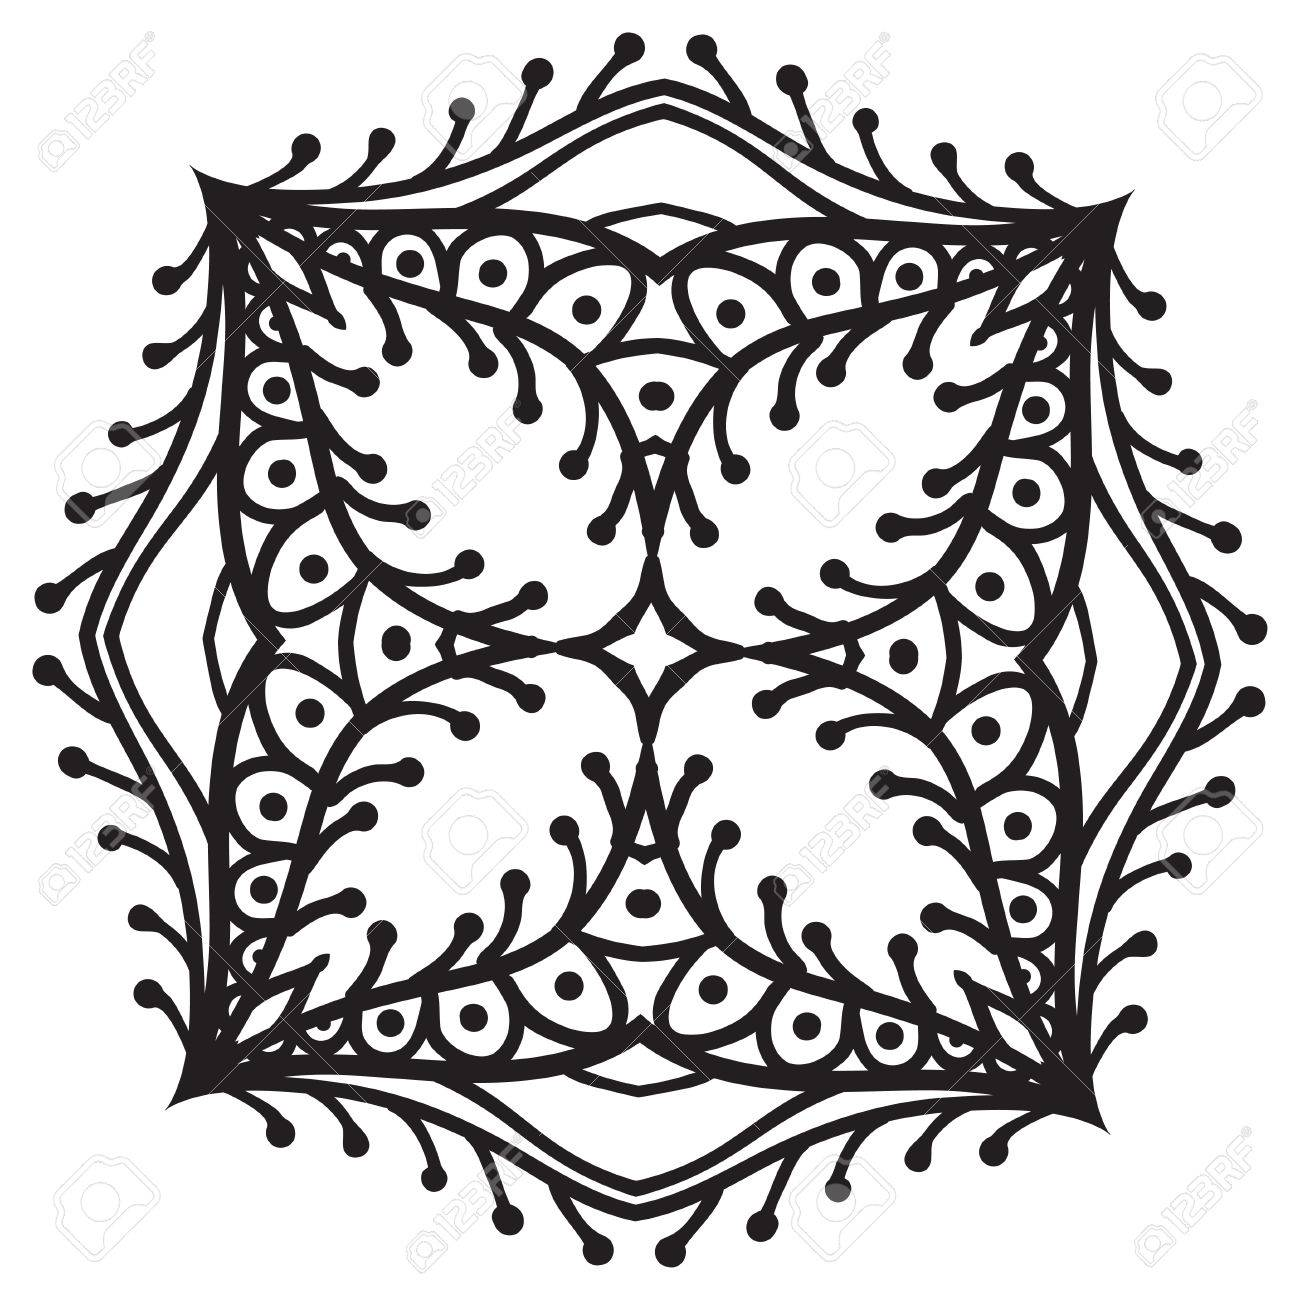 Hand Drawing Zentangle Element Black And White Flower Mandala